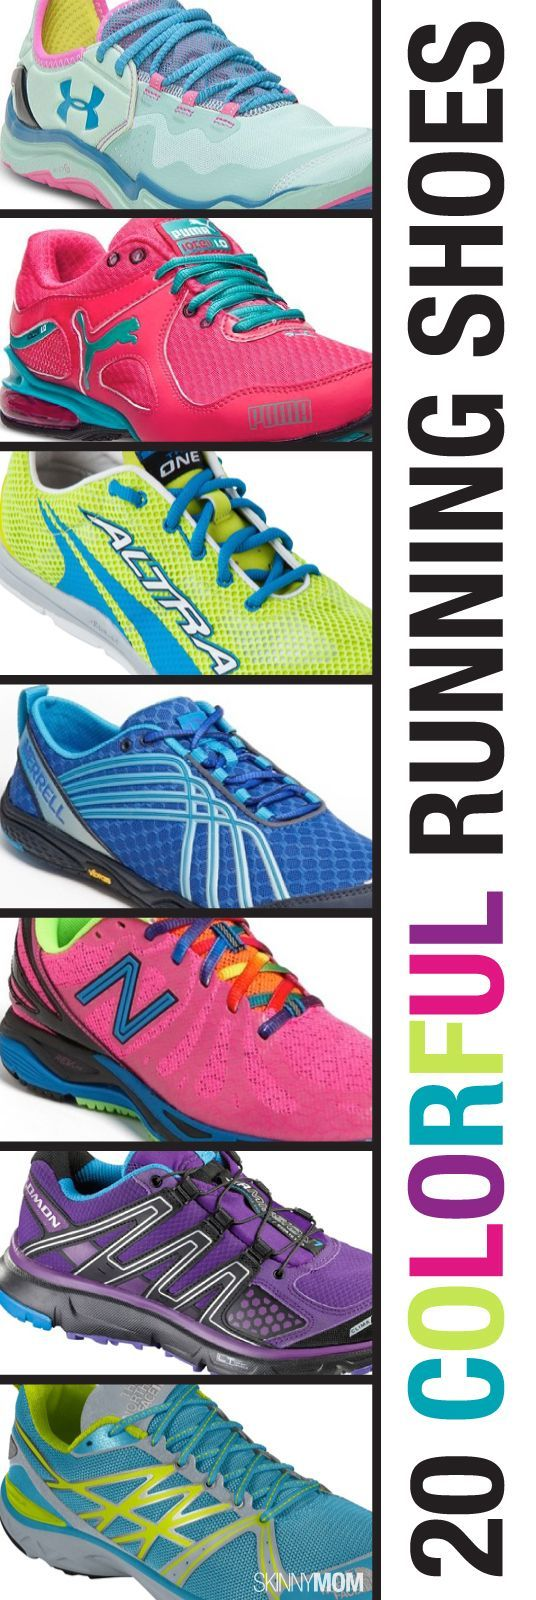 Throw some color in your life with these colorful running shoes